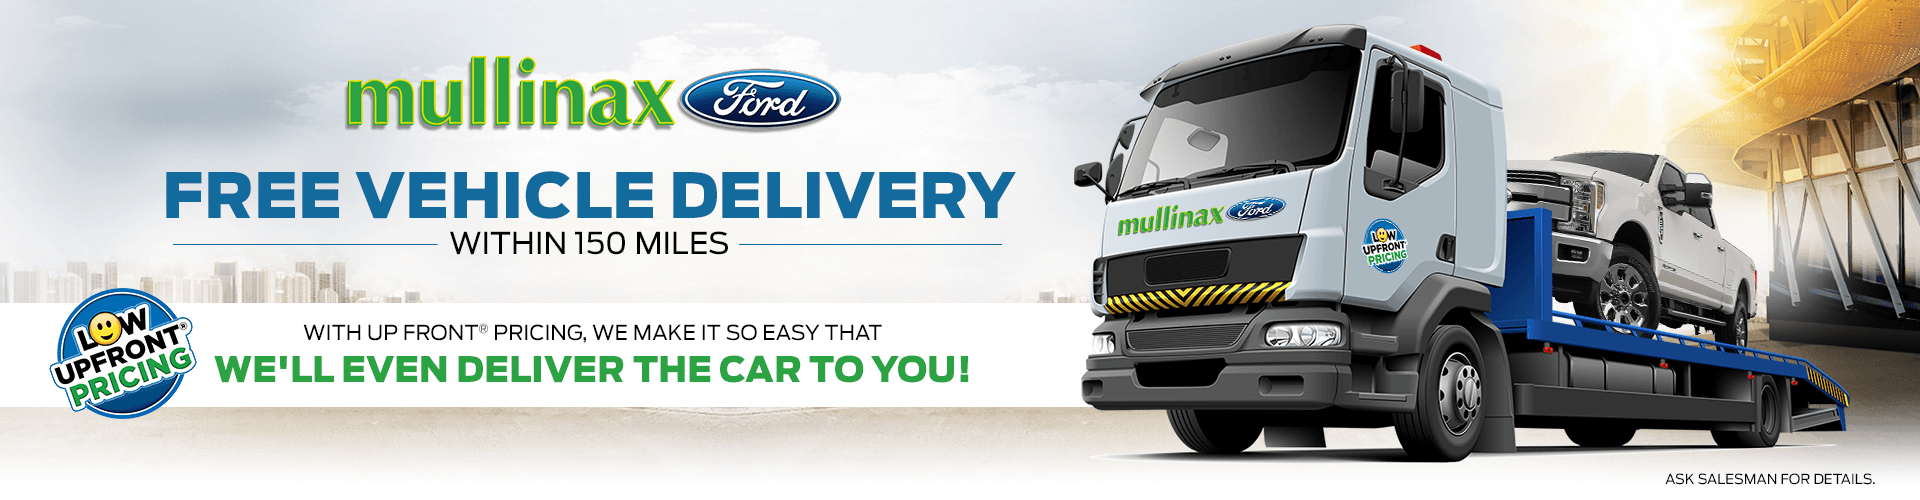 Free vehicle delivery within 150 miles